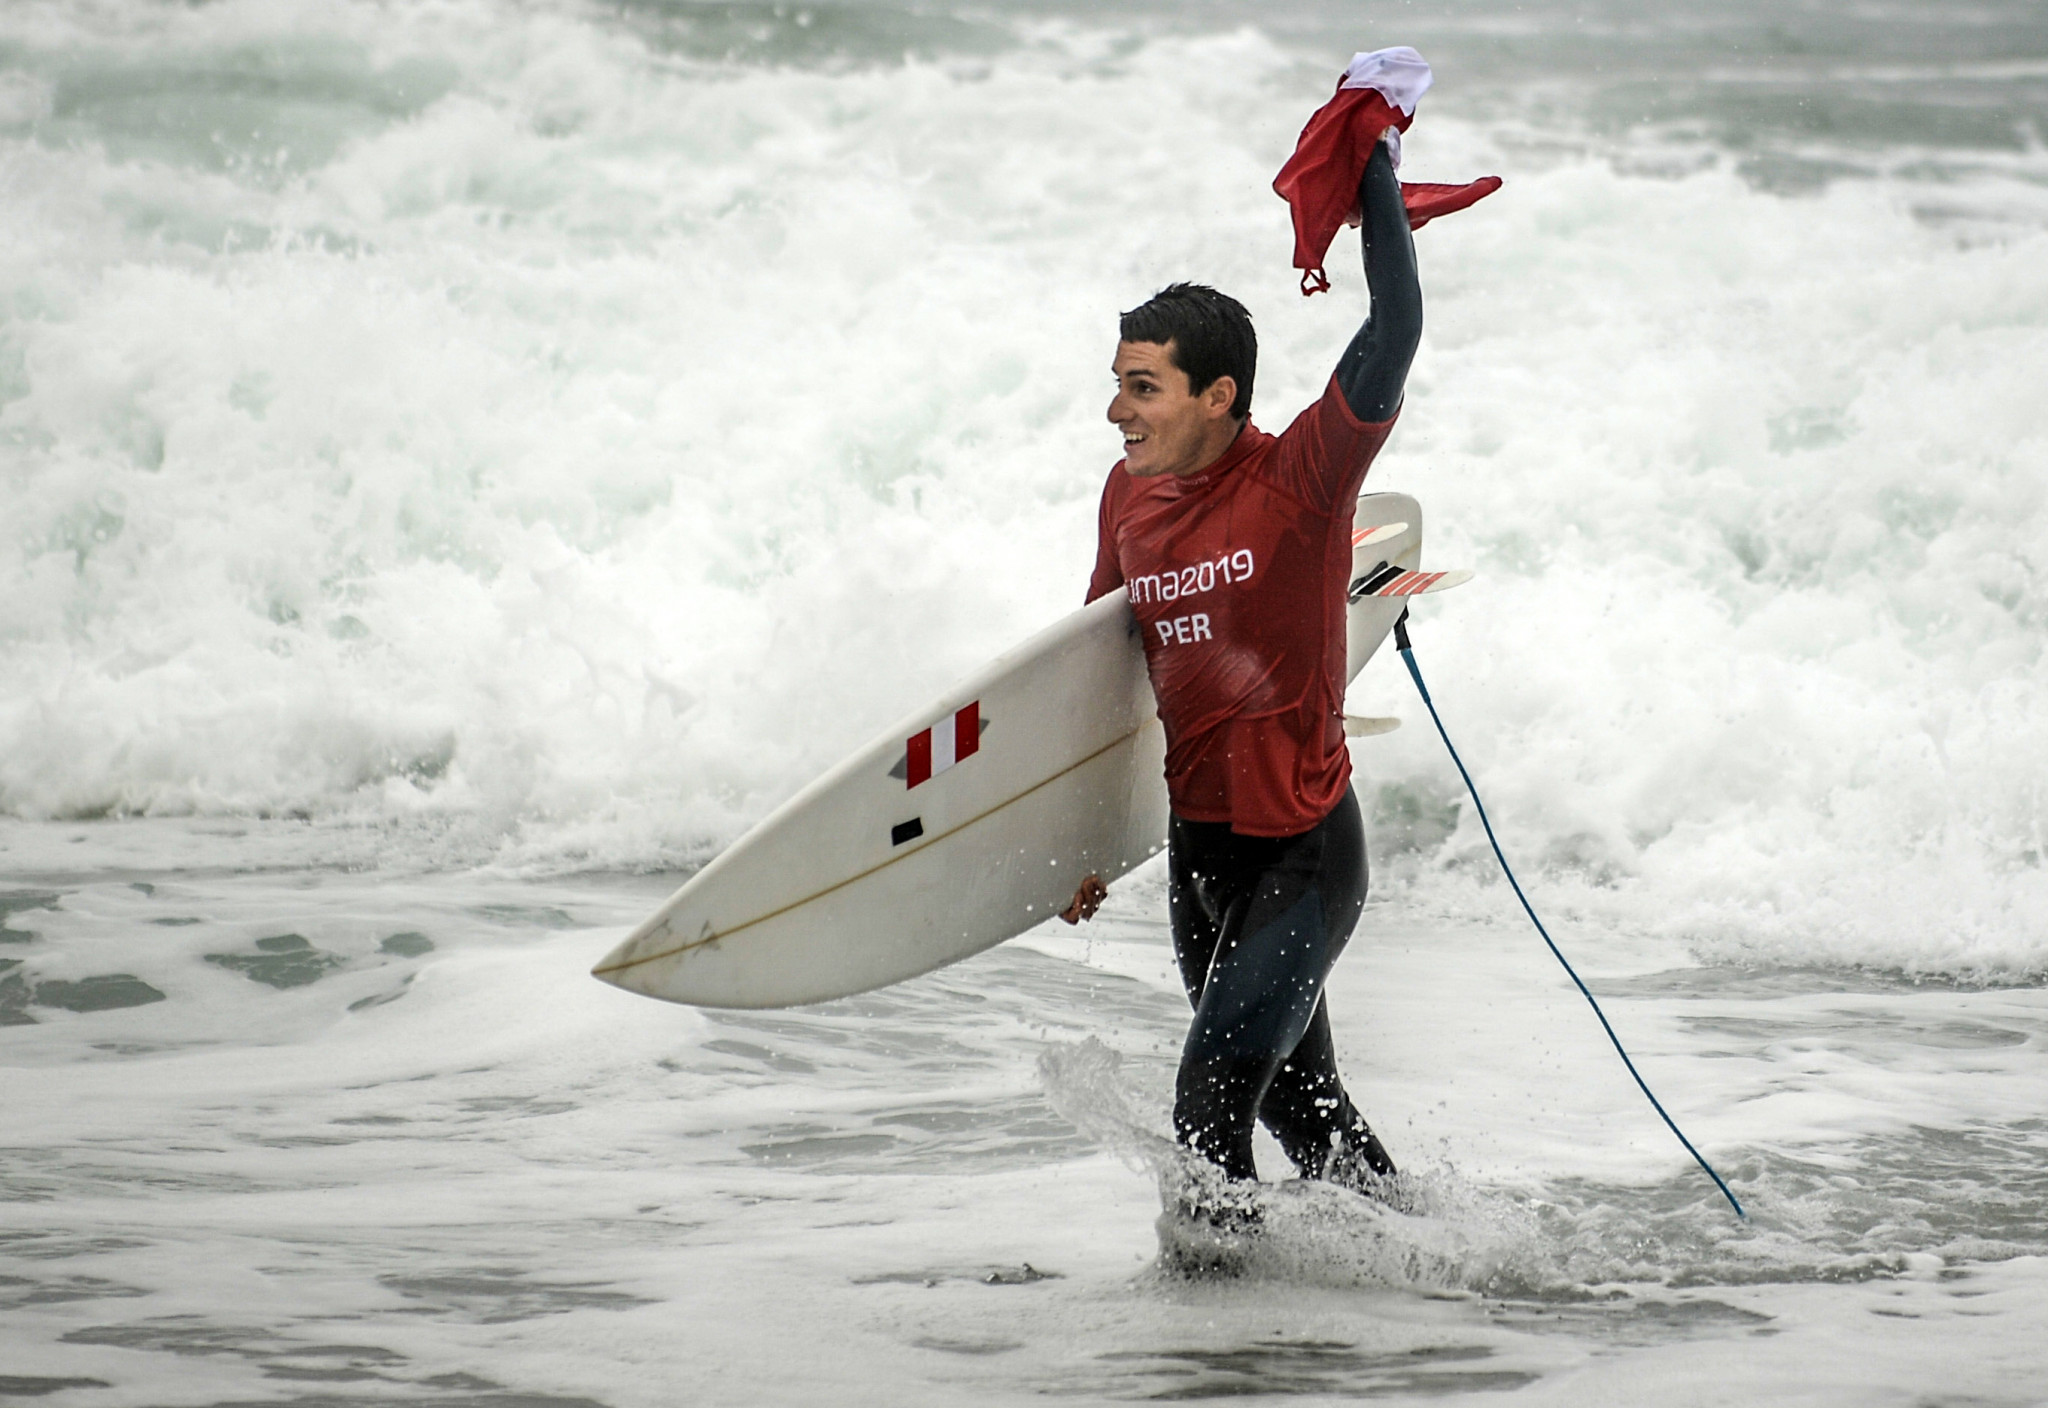 Peru shine on final day of Lima 2019 surfing as Rosas and Mesinas qualify for Tokyo 2020